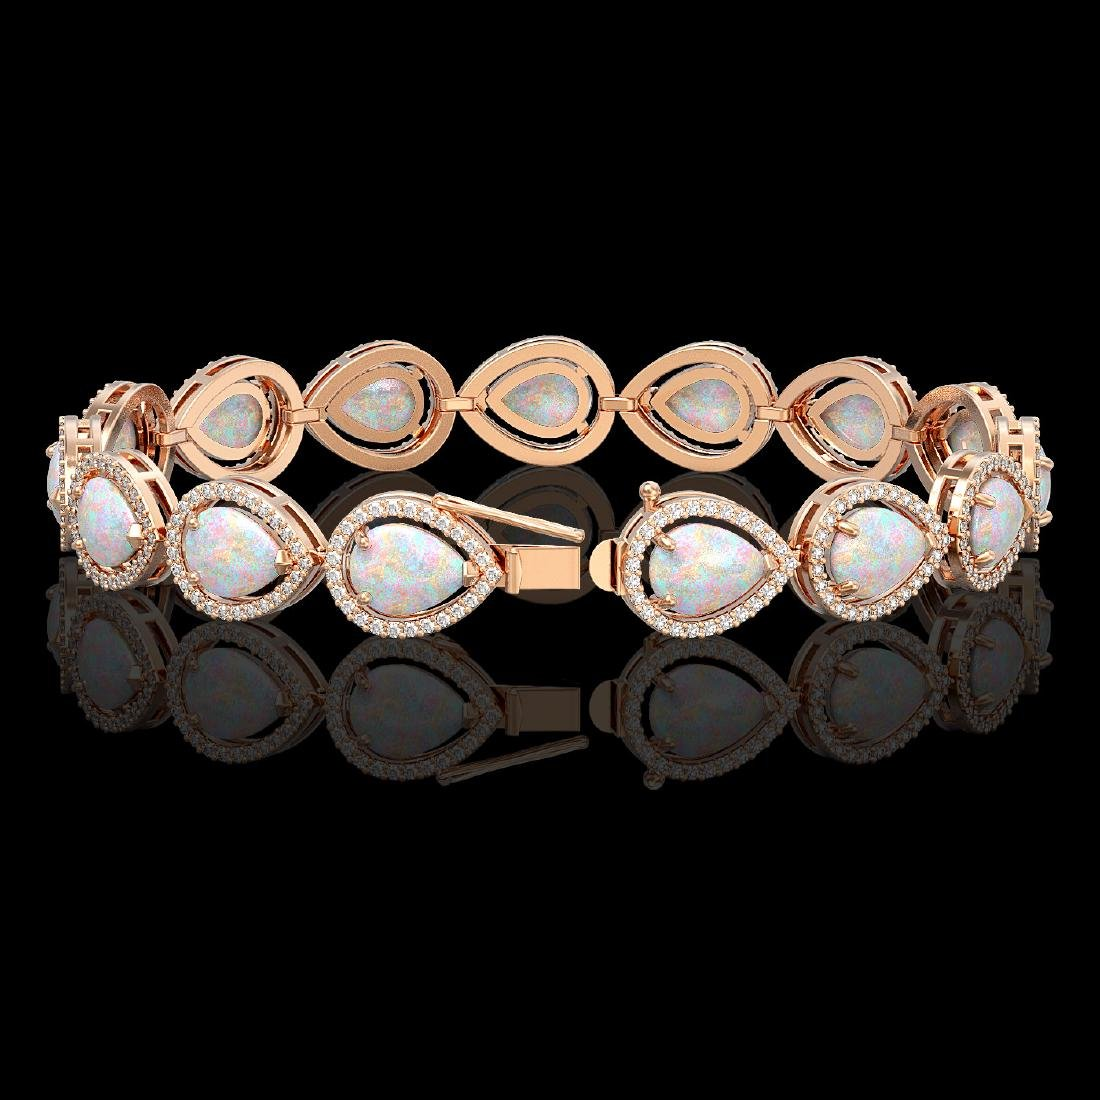 17.15 CTW Opal & Diamond Halo Bracelet 10K Rose Gold - 2